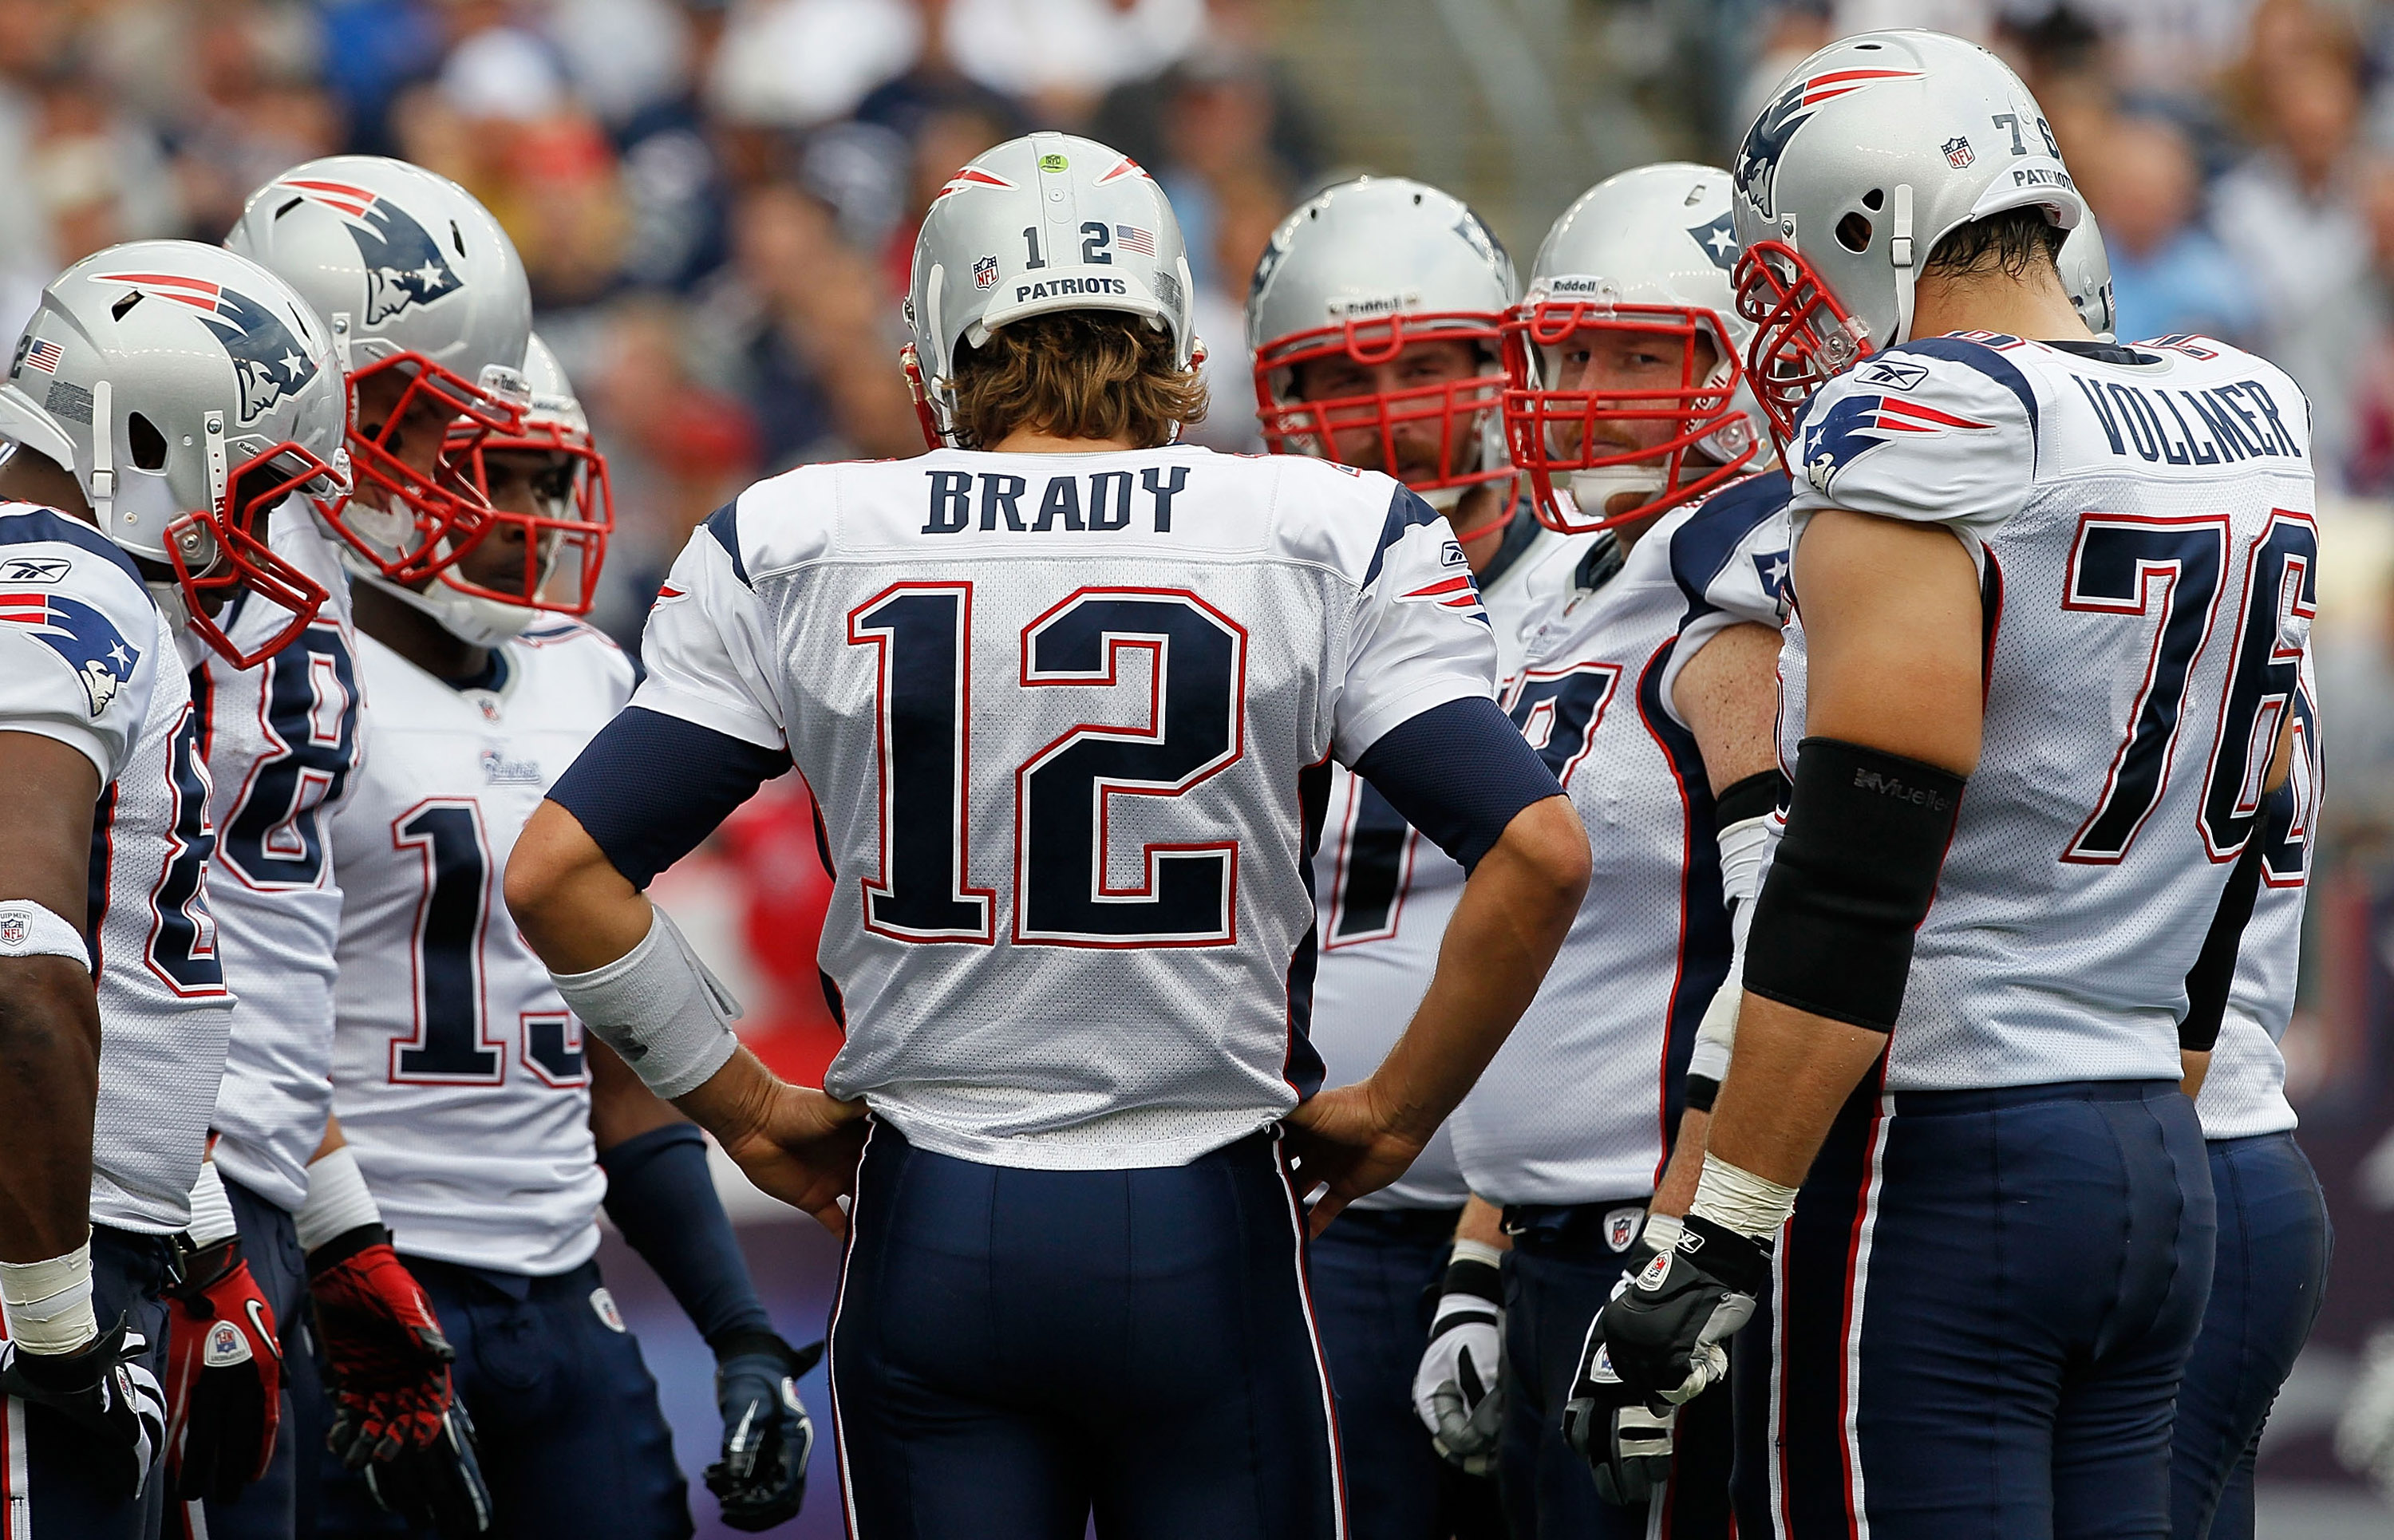 FOXBORO, MA - SEPTEMBER 12: Quarterback Tom Brady #12  of the New England Patriots hurdles with the offense during the NFL season opener against the Cincinnati Bengals at Gillette Stadium on September 12, 2010 in Foxboro, Massachusetts. (Photo by Jim Roga